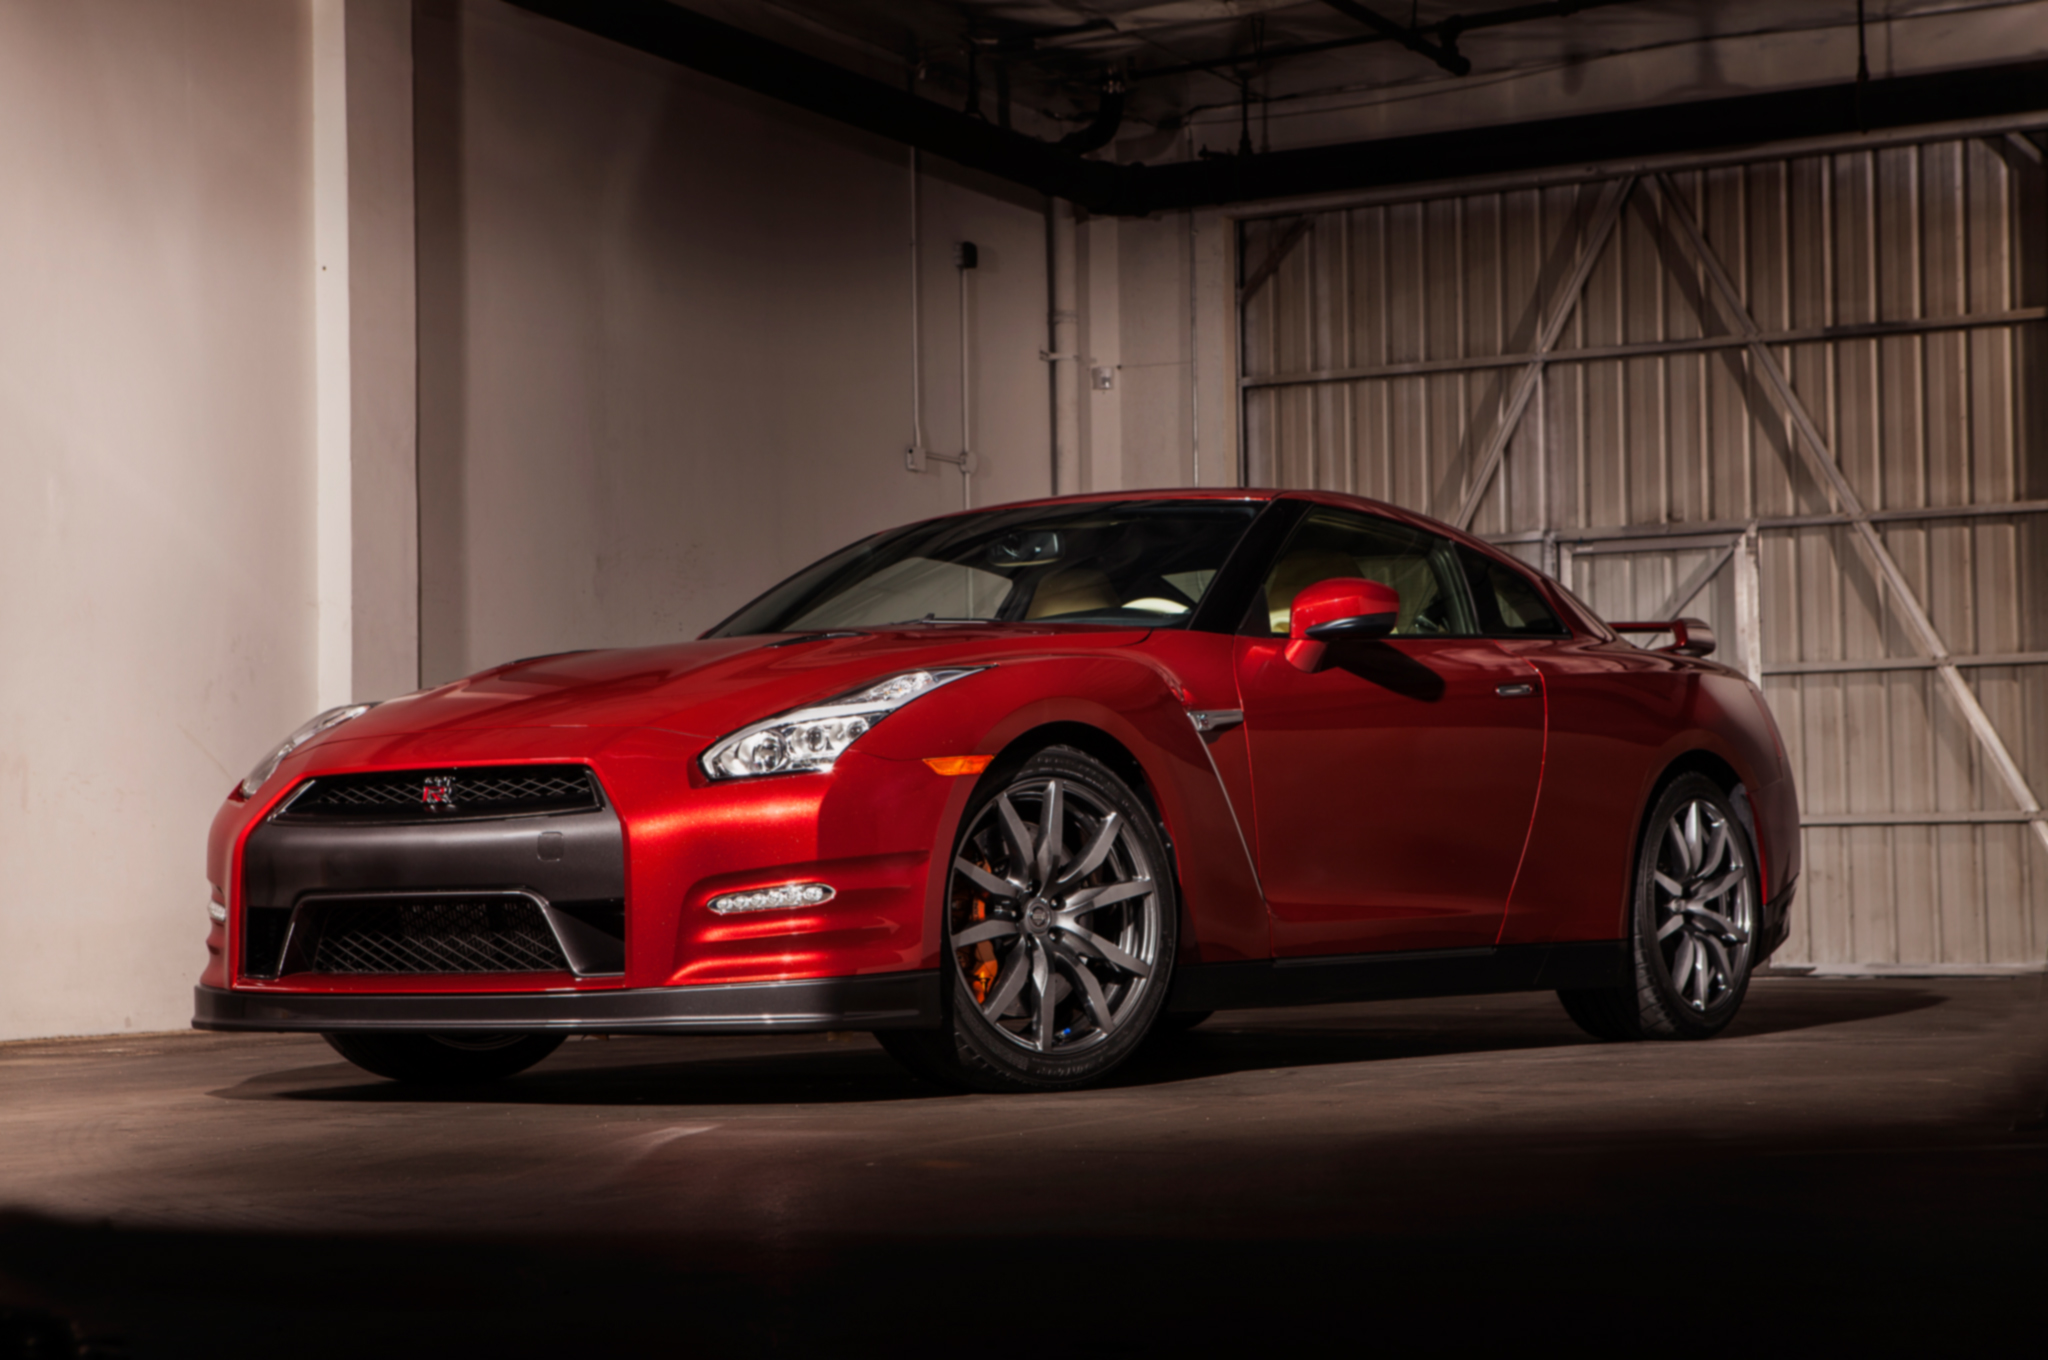 Superb 2015 Nissan GT R Gets Updates, Priced Starting At $103,365